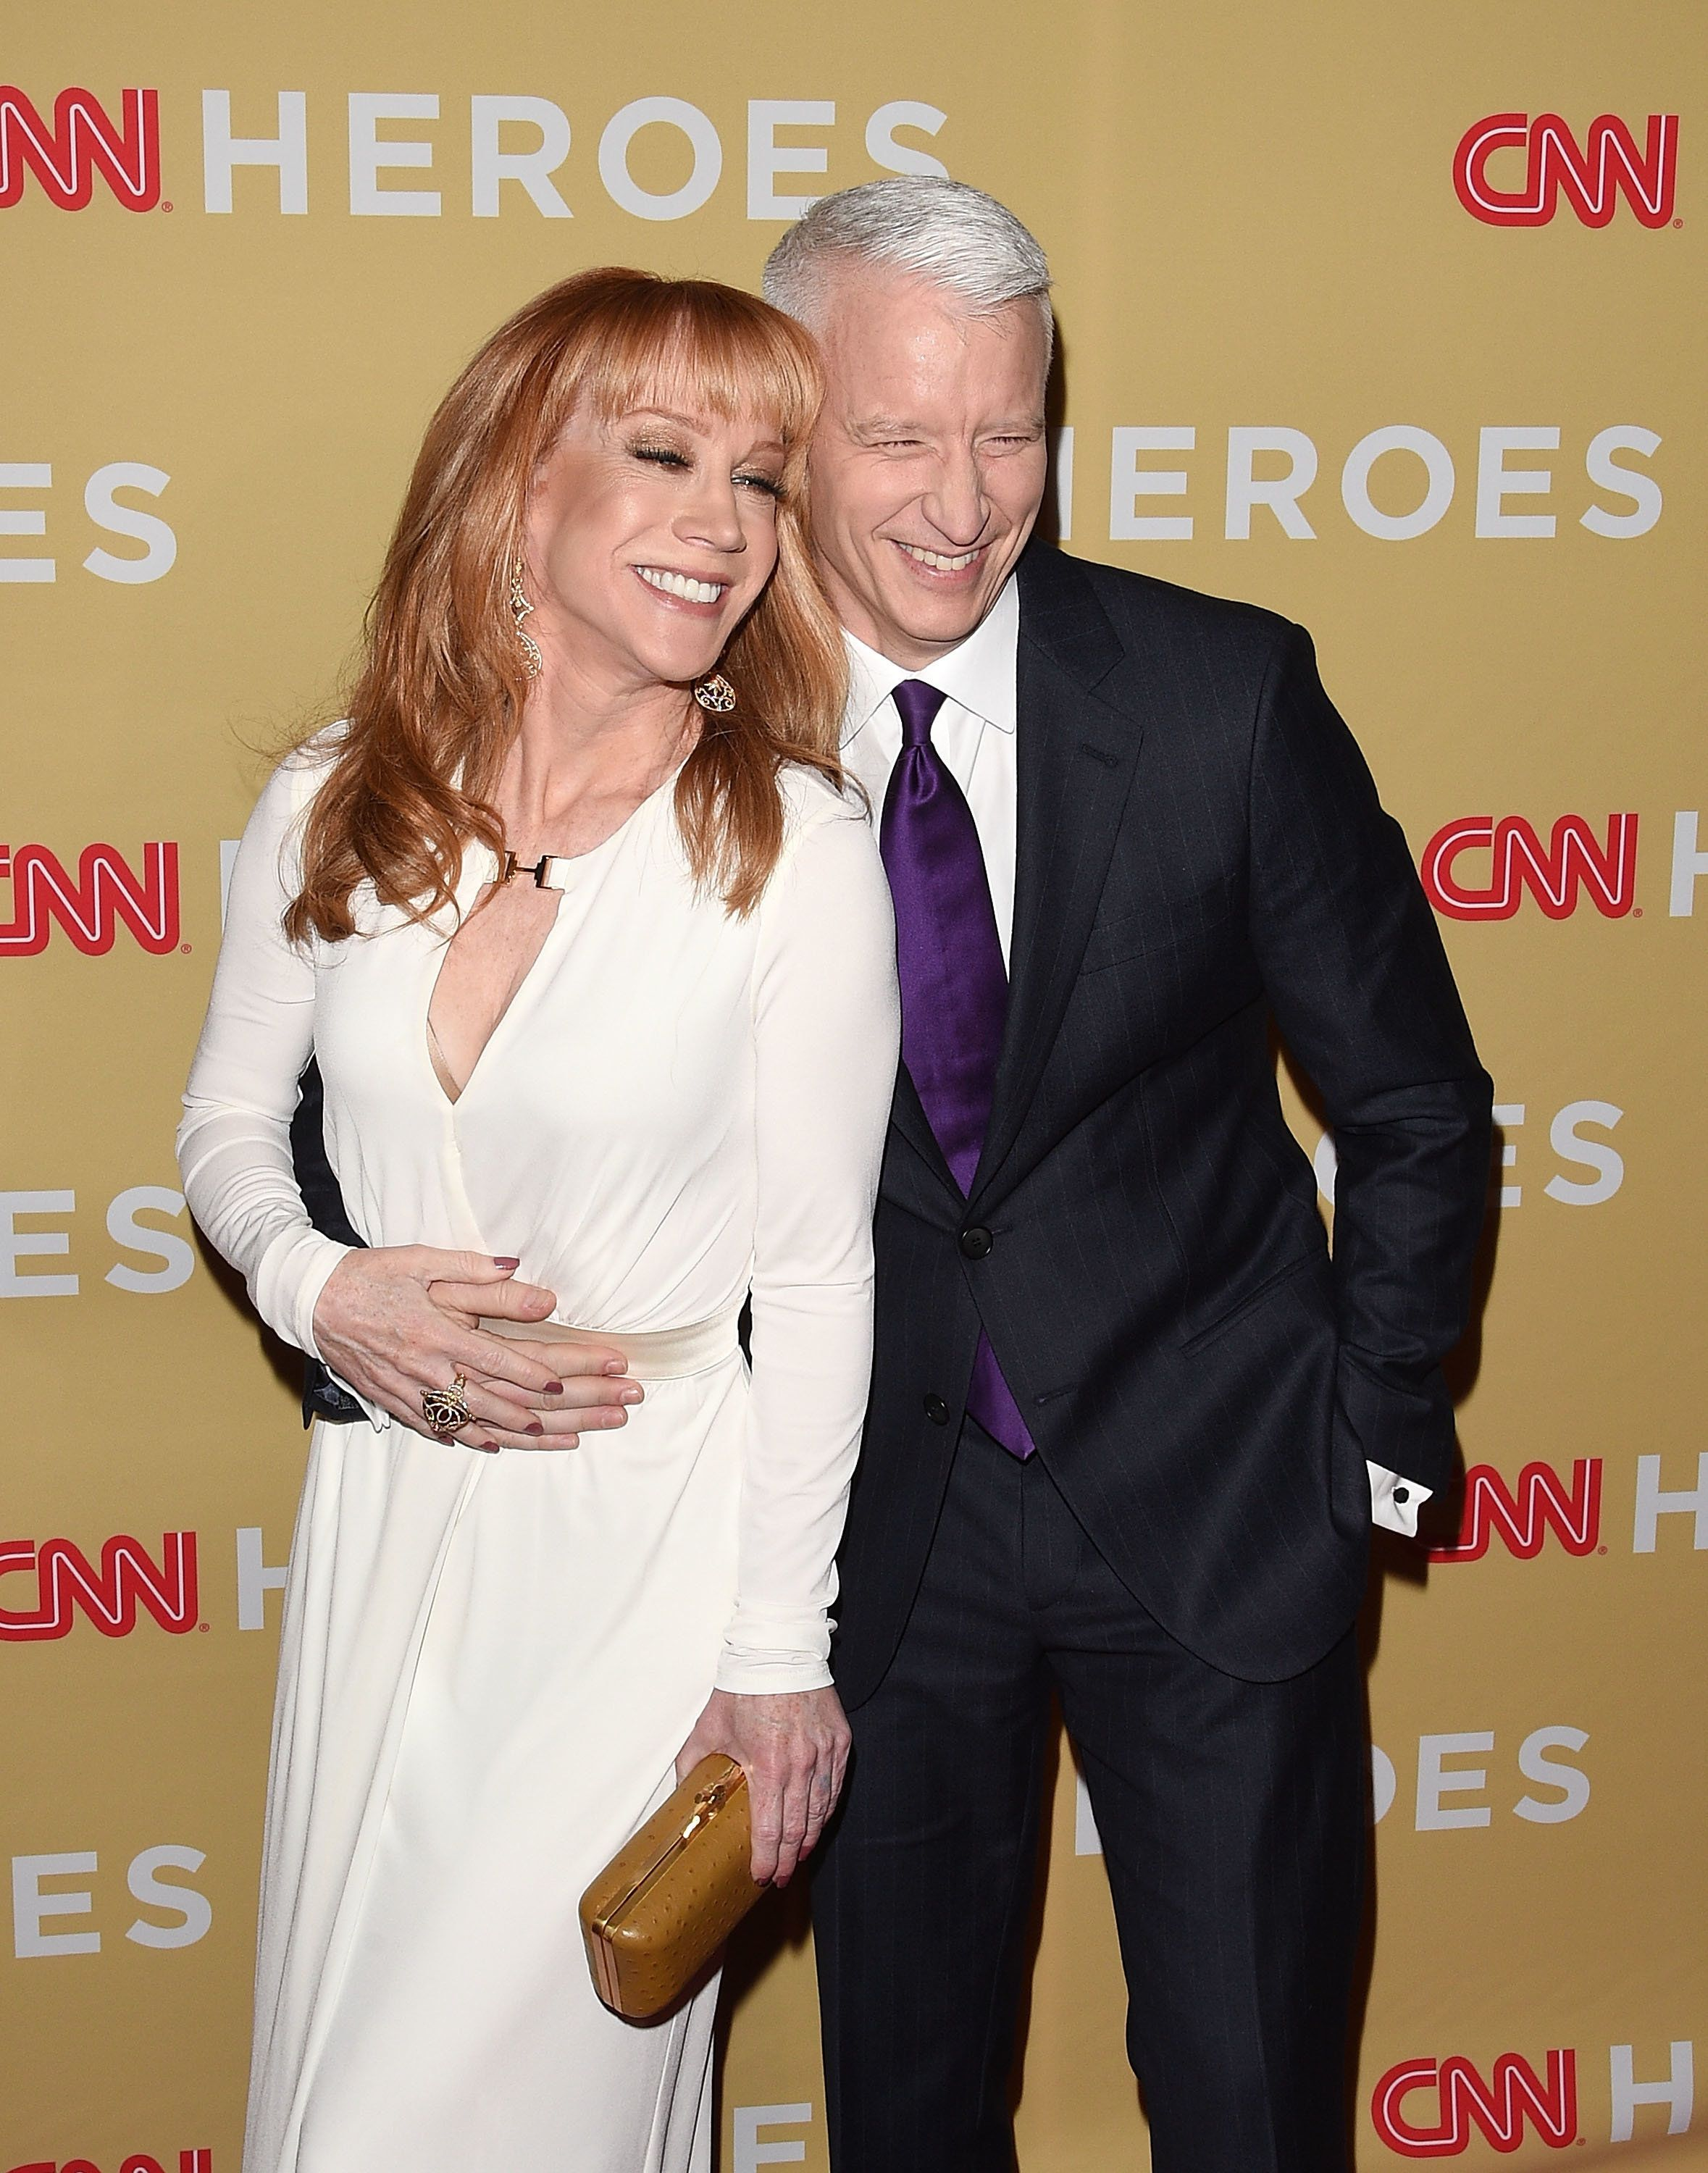 NEW YORK, NY - NOVEMBER 18:  Kathy Griffin and Anderson Cooper attend the 2014 CNN Heroes: An All-Star Tribute at the American Museum of Natural History on November 18, 2014 in New York City.  (Photo by Andrew H. Walker/Getty Images)